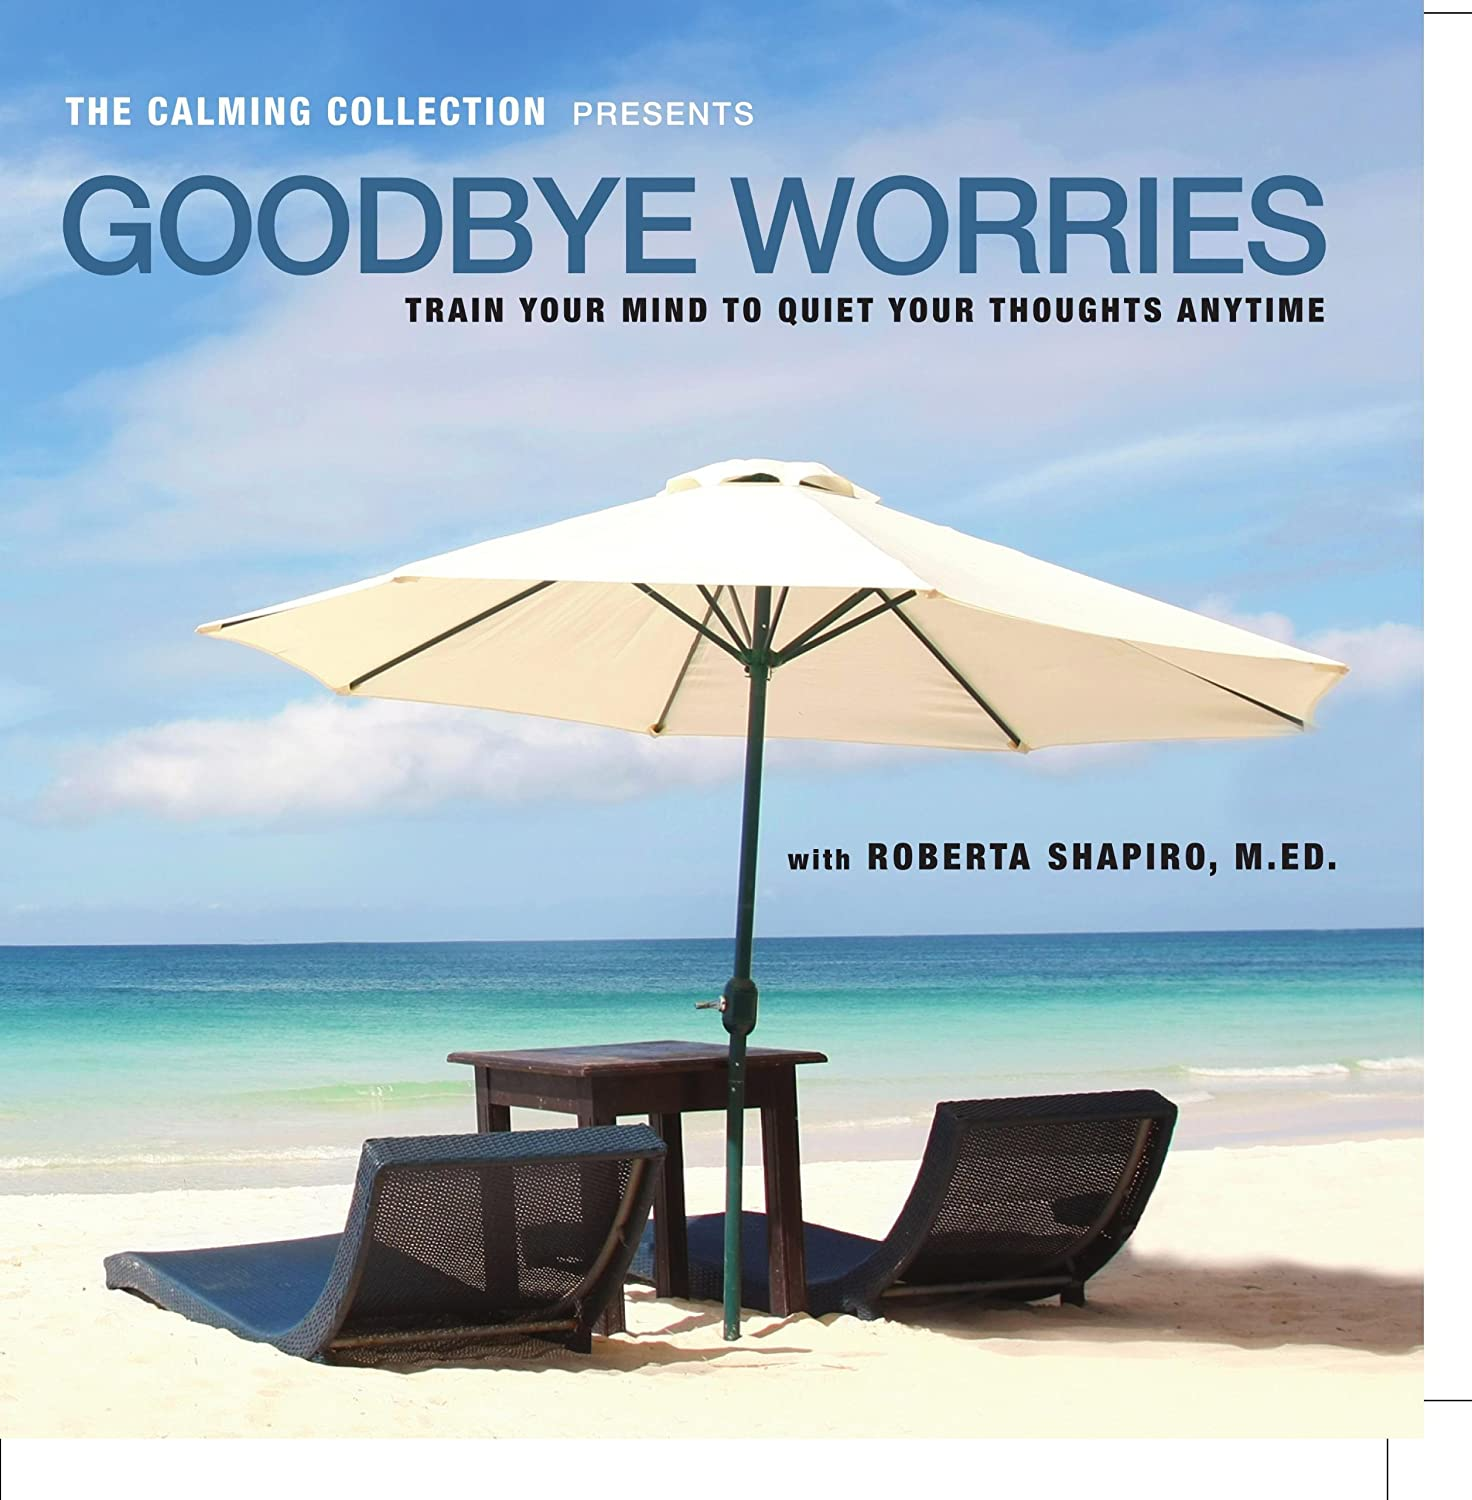 The Calming Collection - Goodbye Worries - Guided meditation to train your mind to quiet your thoughts